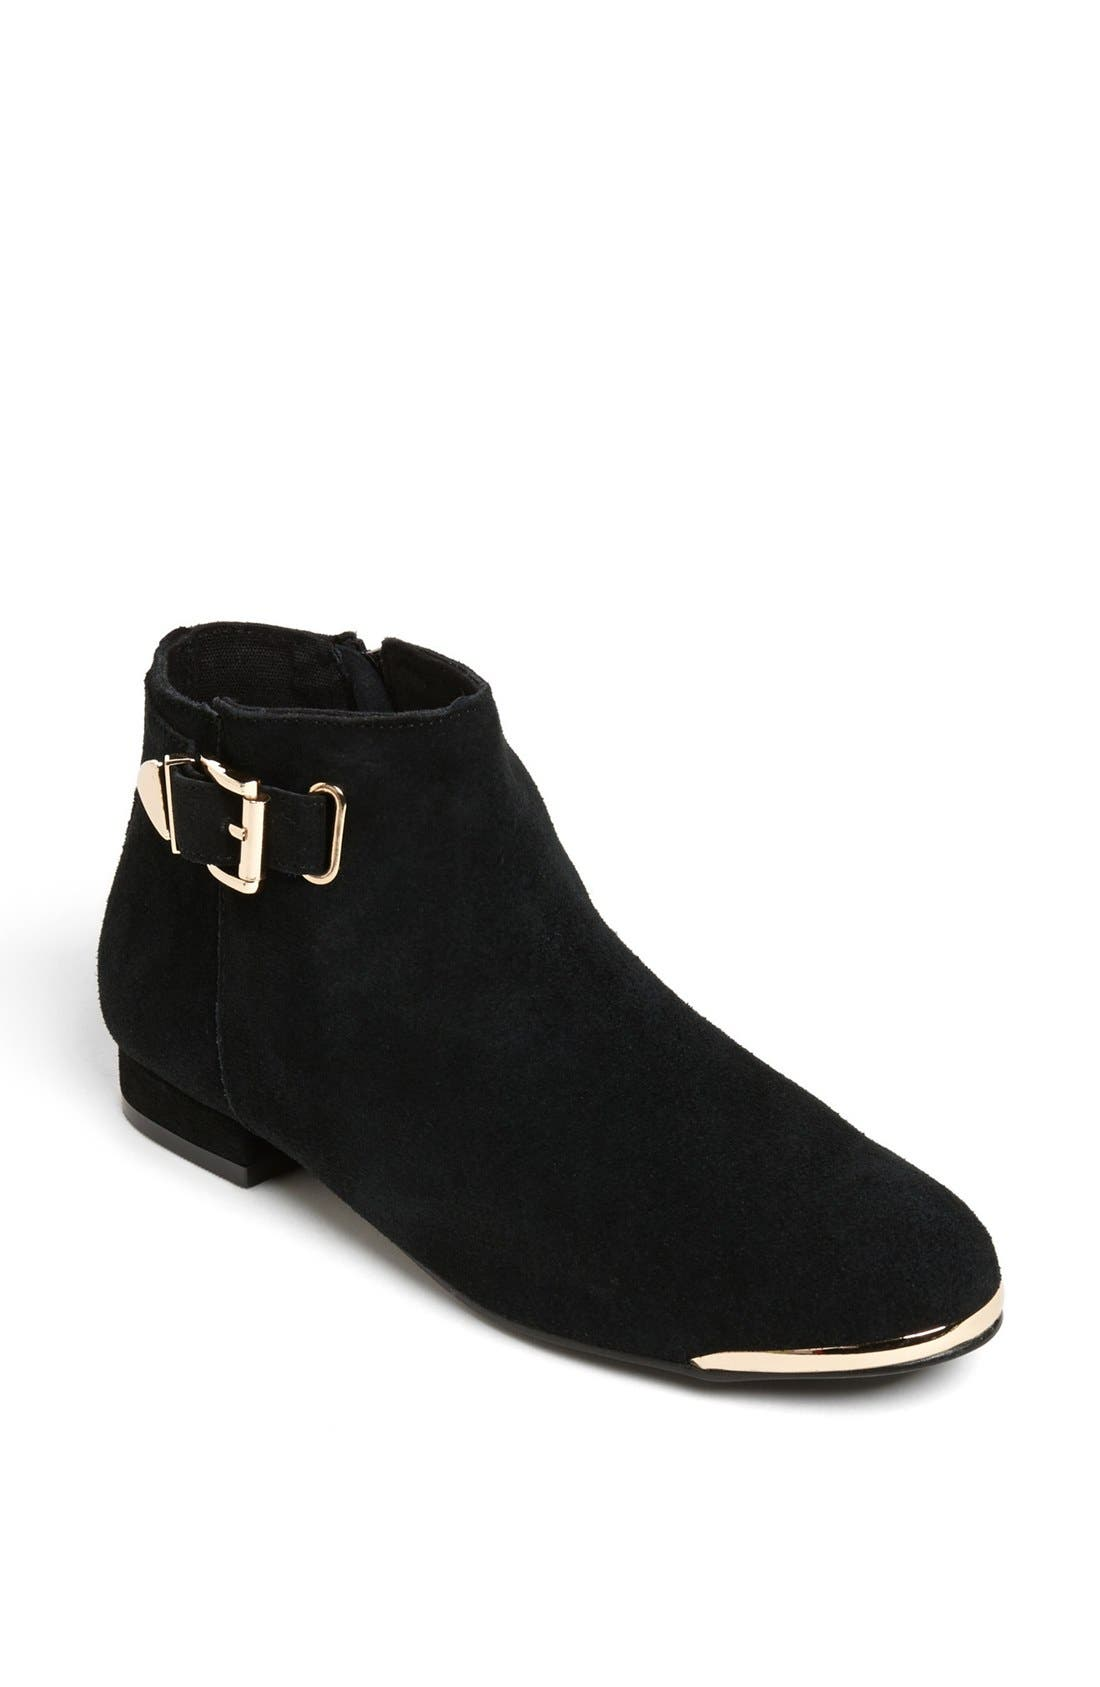 Main Image - Topshop 'Mam' Studded Bootie